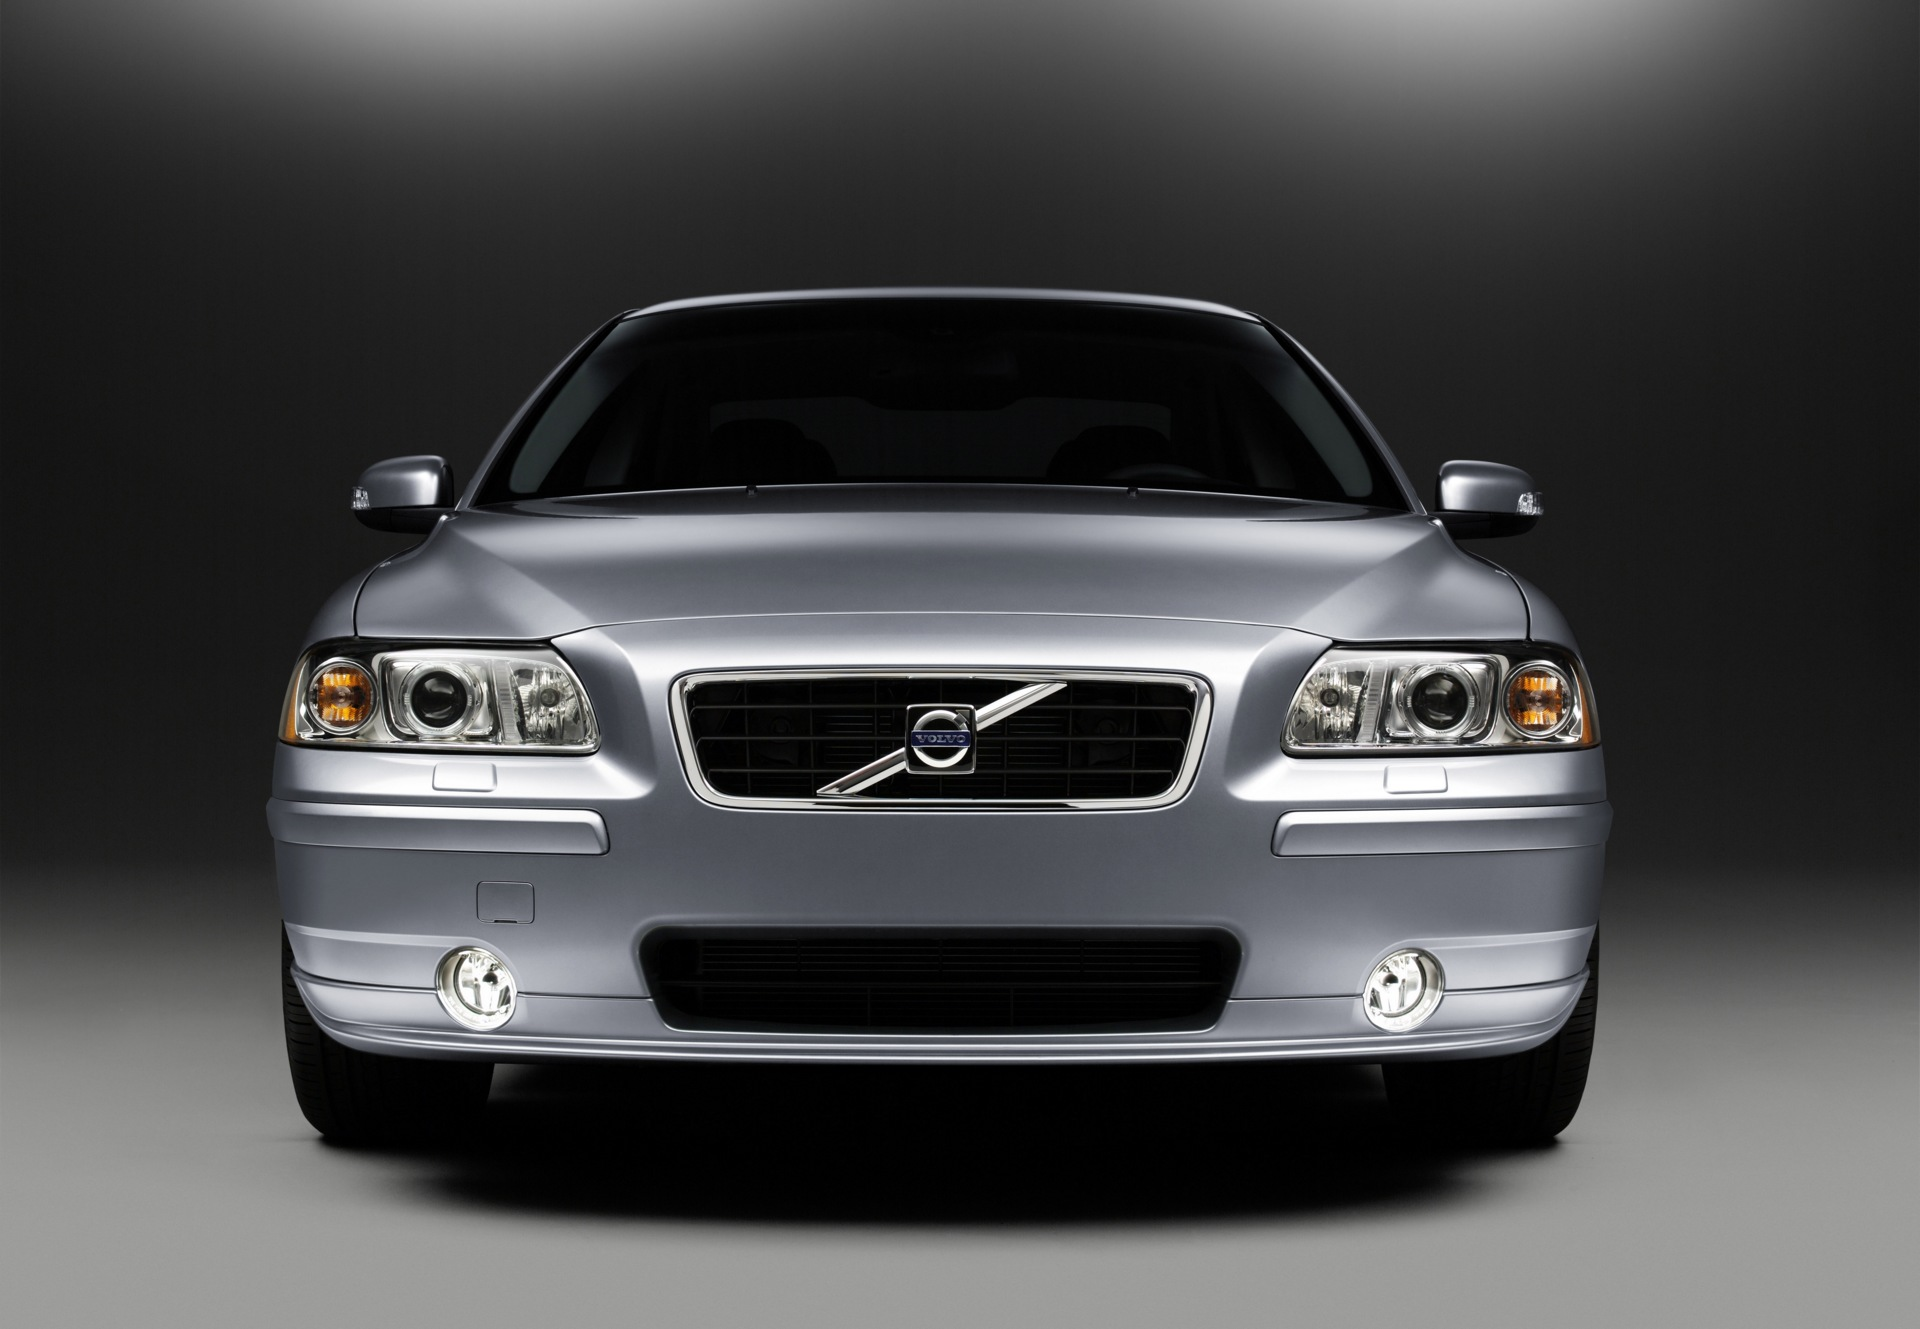 2008 Volvo S60 News and Information | conceptcarz.com